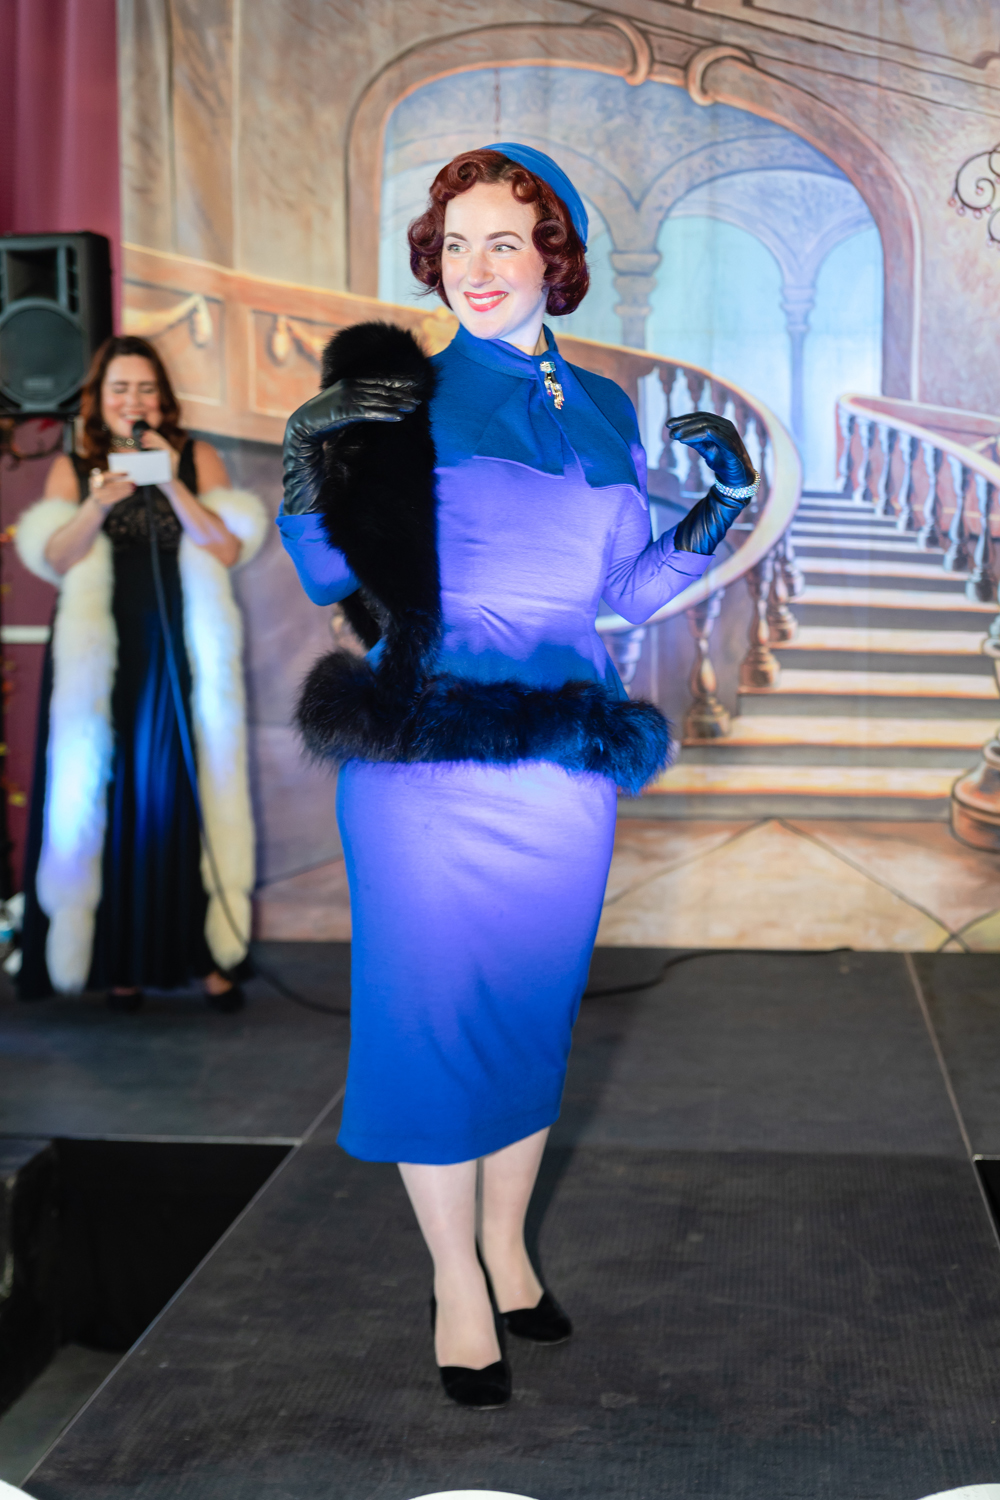 Straight out of Mad Men, she (AKA @dee2the9s on insta) stepped onto the stage. My goodness, this cobalt blue suit with fur trim and matching hat was out-of-this-world!